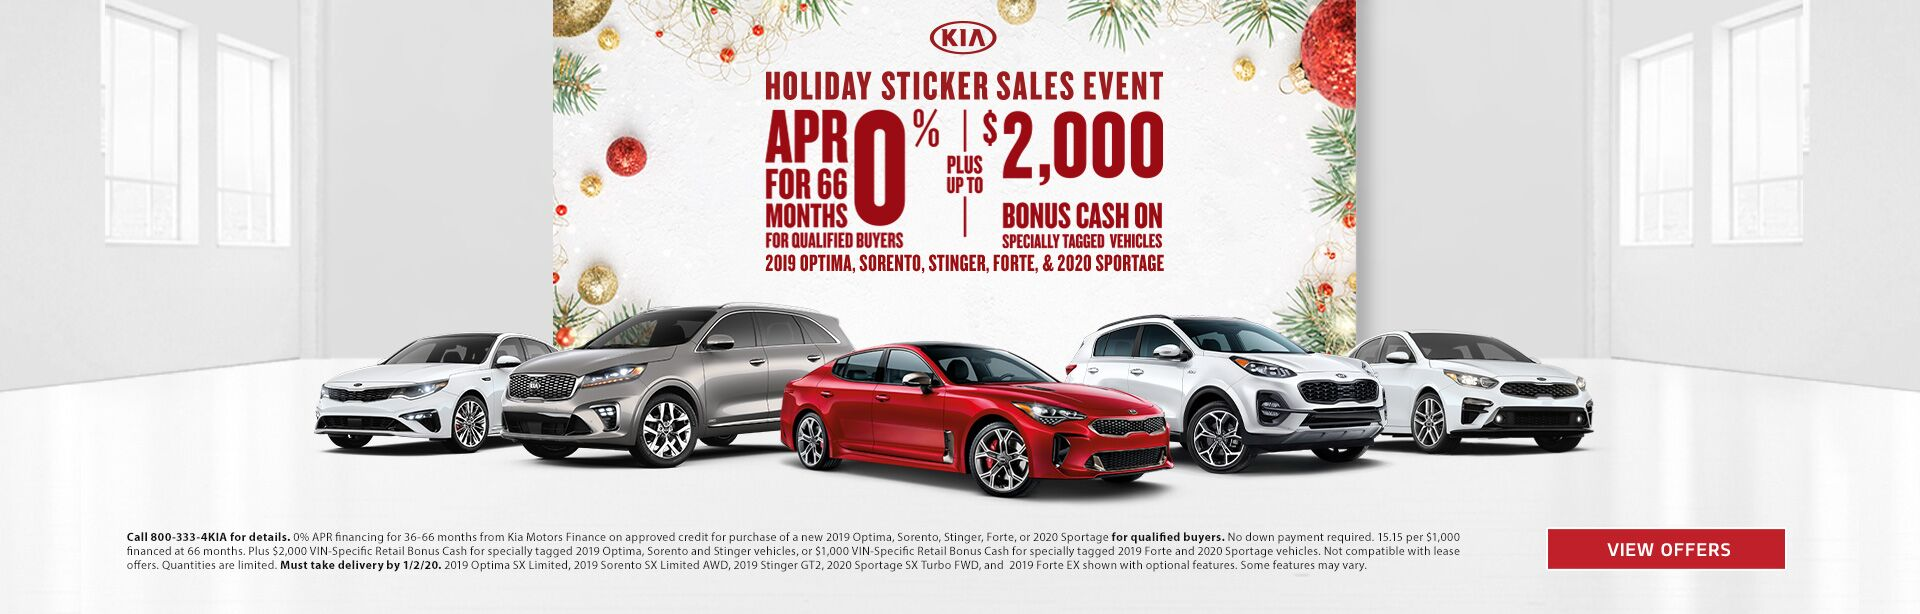 Holiday Stickers Sales Event